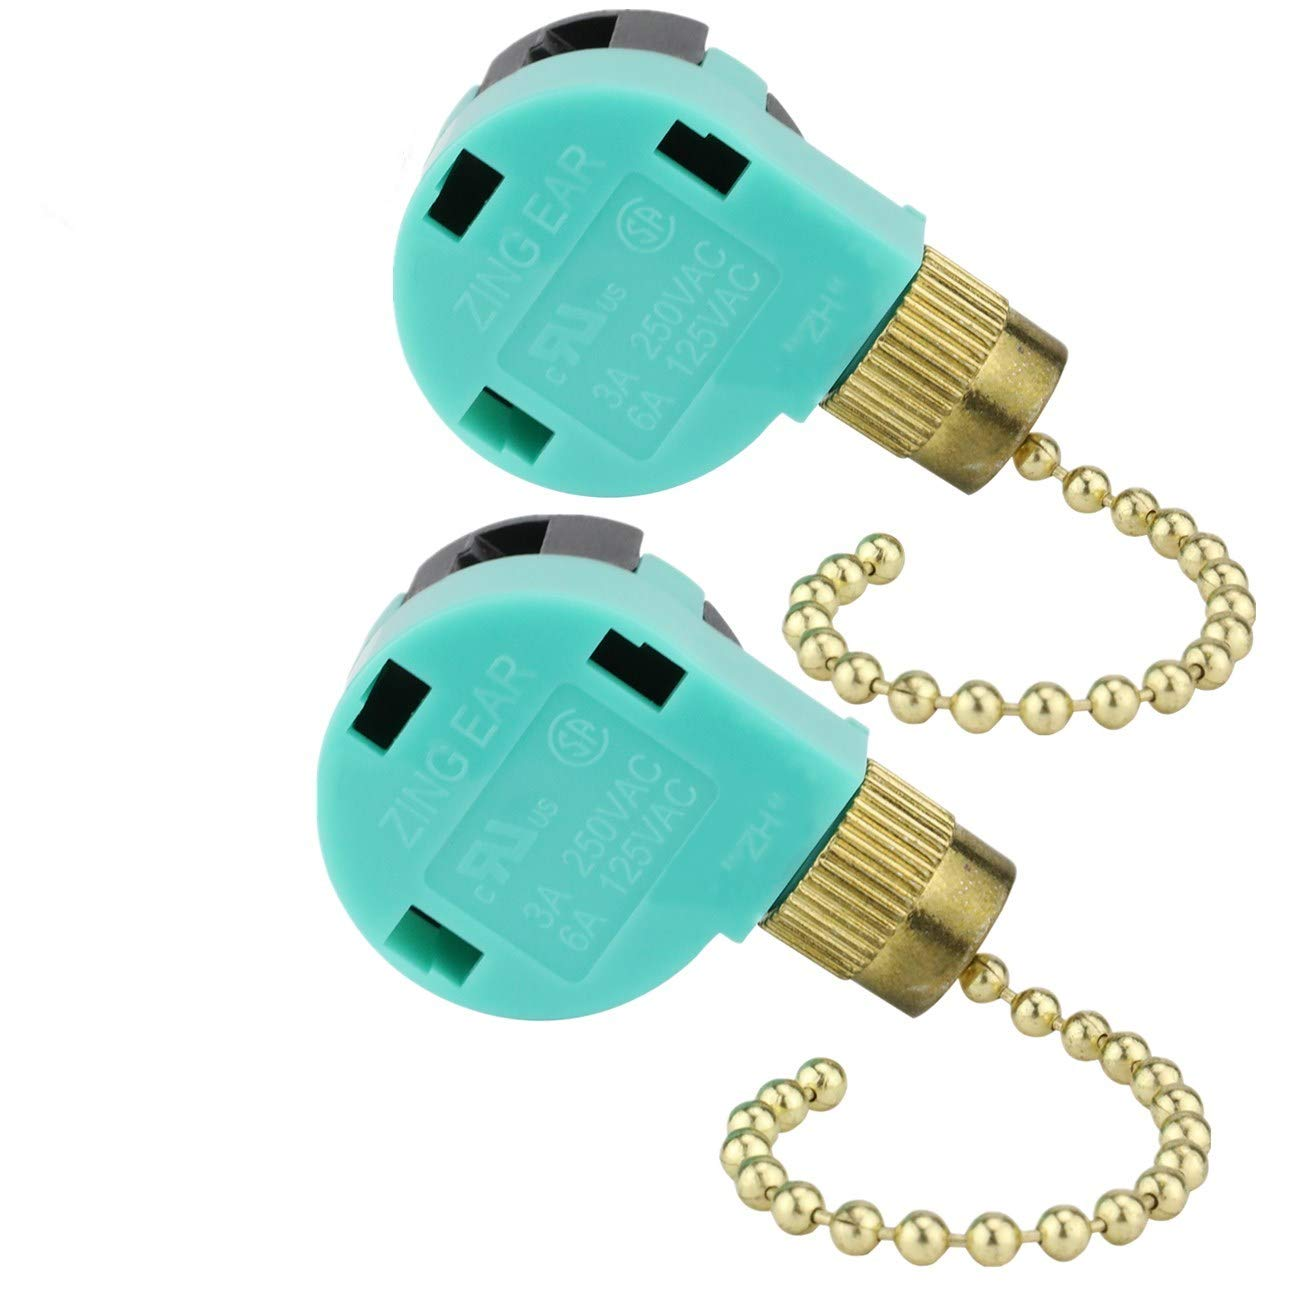 Ceiling Fan Switch ZE-268S6 Zing Ear Switch 3 Speed 4 Wire Pull Chain Control Ceiling Fan Replacement Speed Control Switch